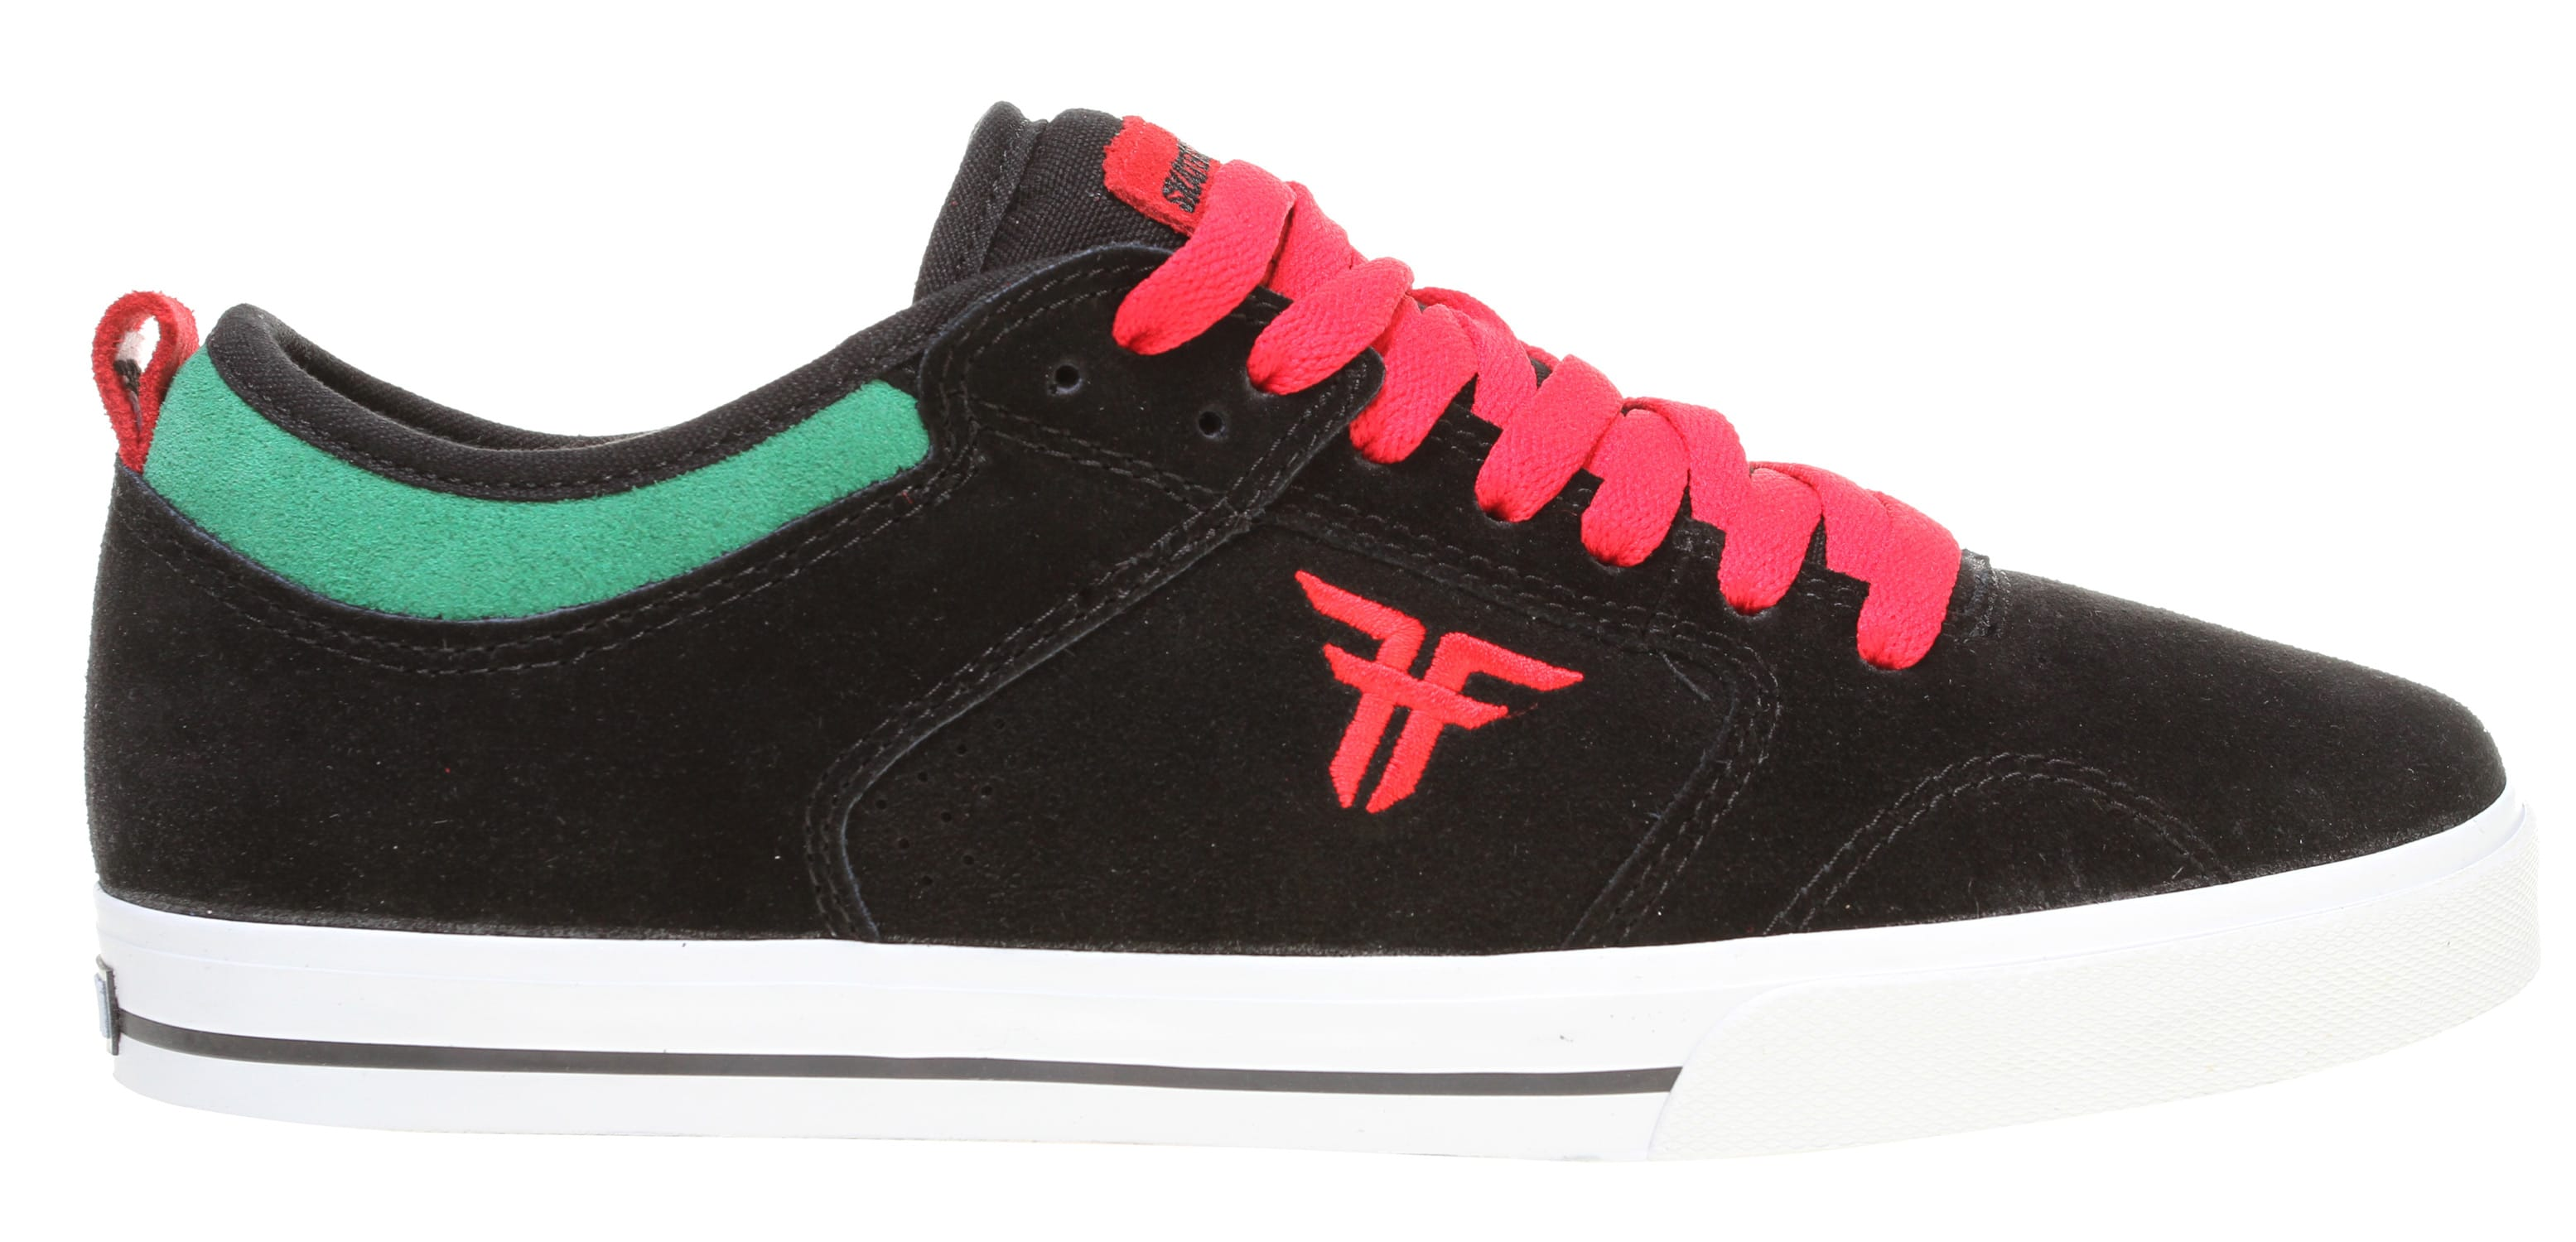 Fallen Clipper Skate Shoes Skateisan - Men's